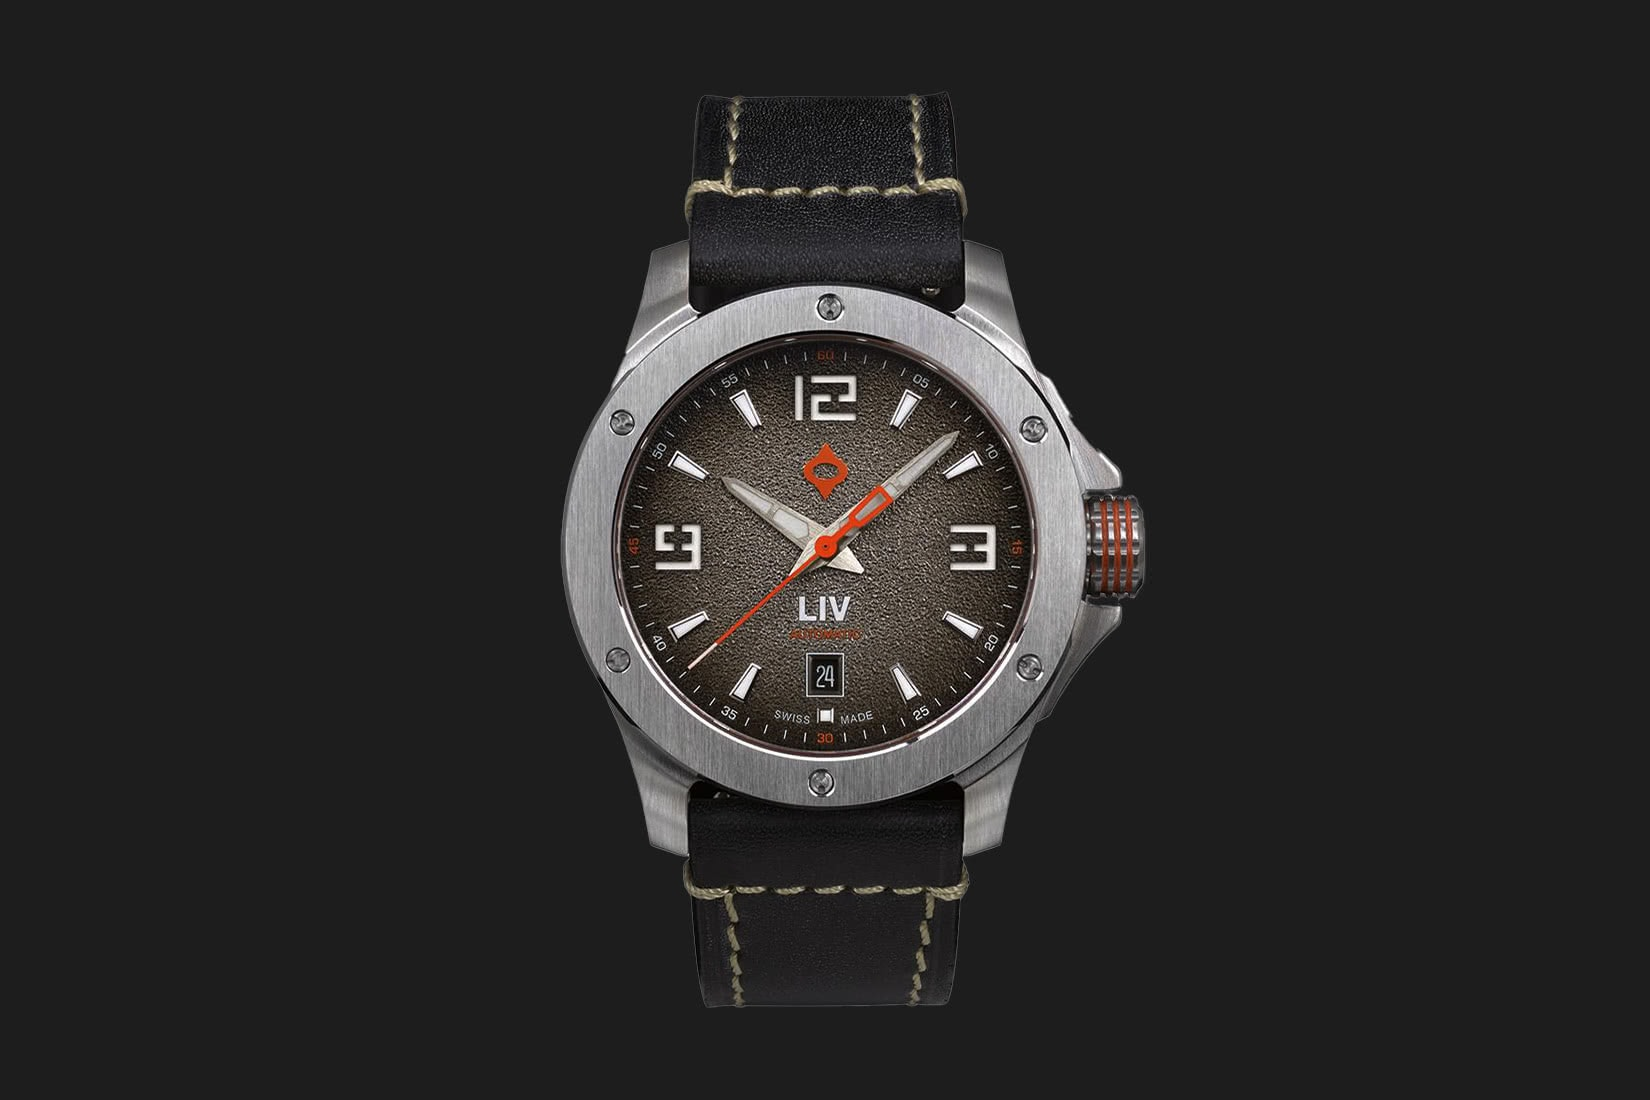 best men watches LIV saturn v moon dust review - Luxe Digital